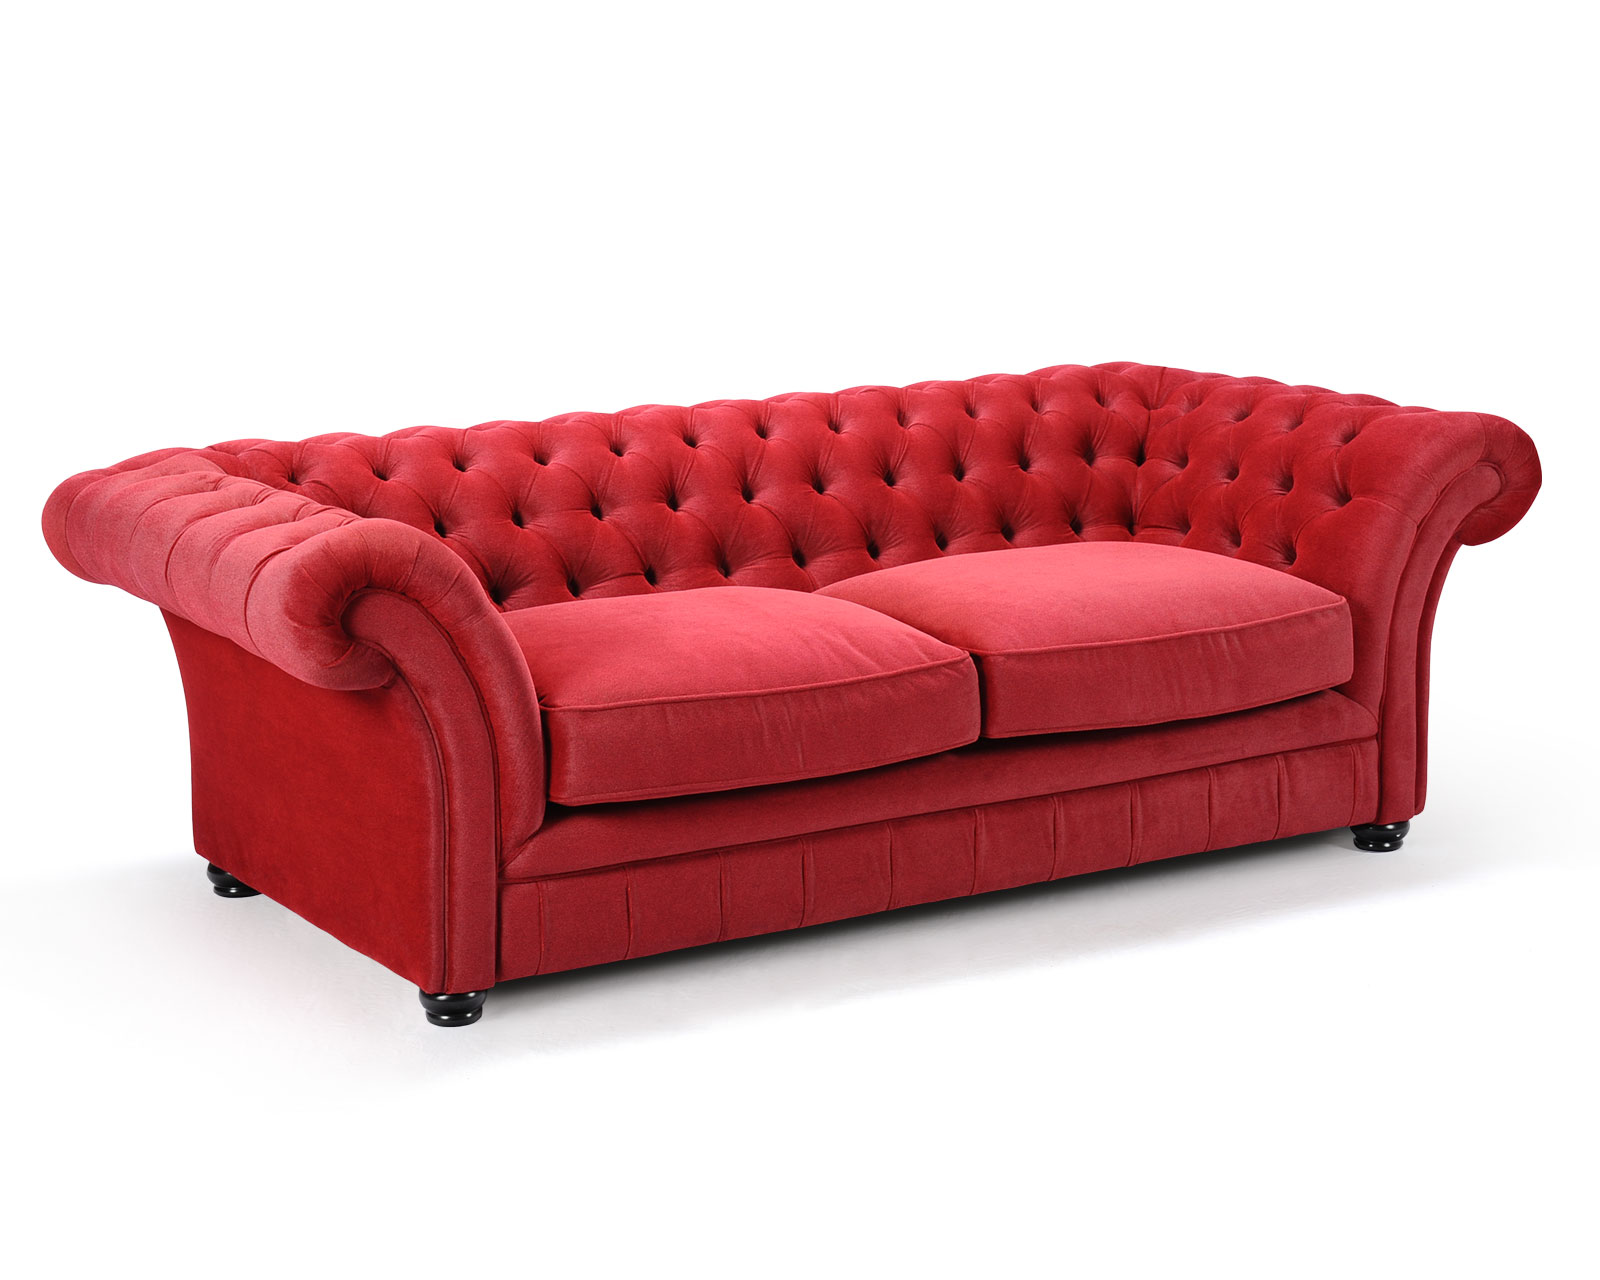 Canapea London Chesterfield 3 locuri